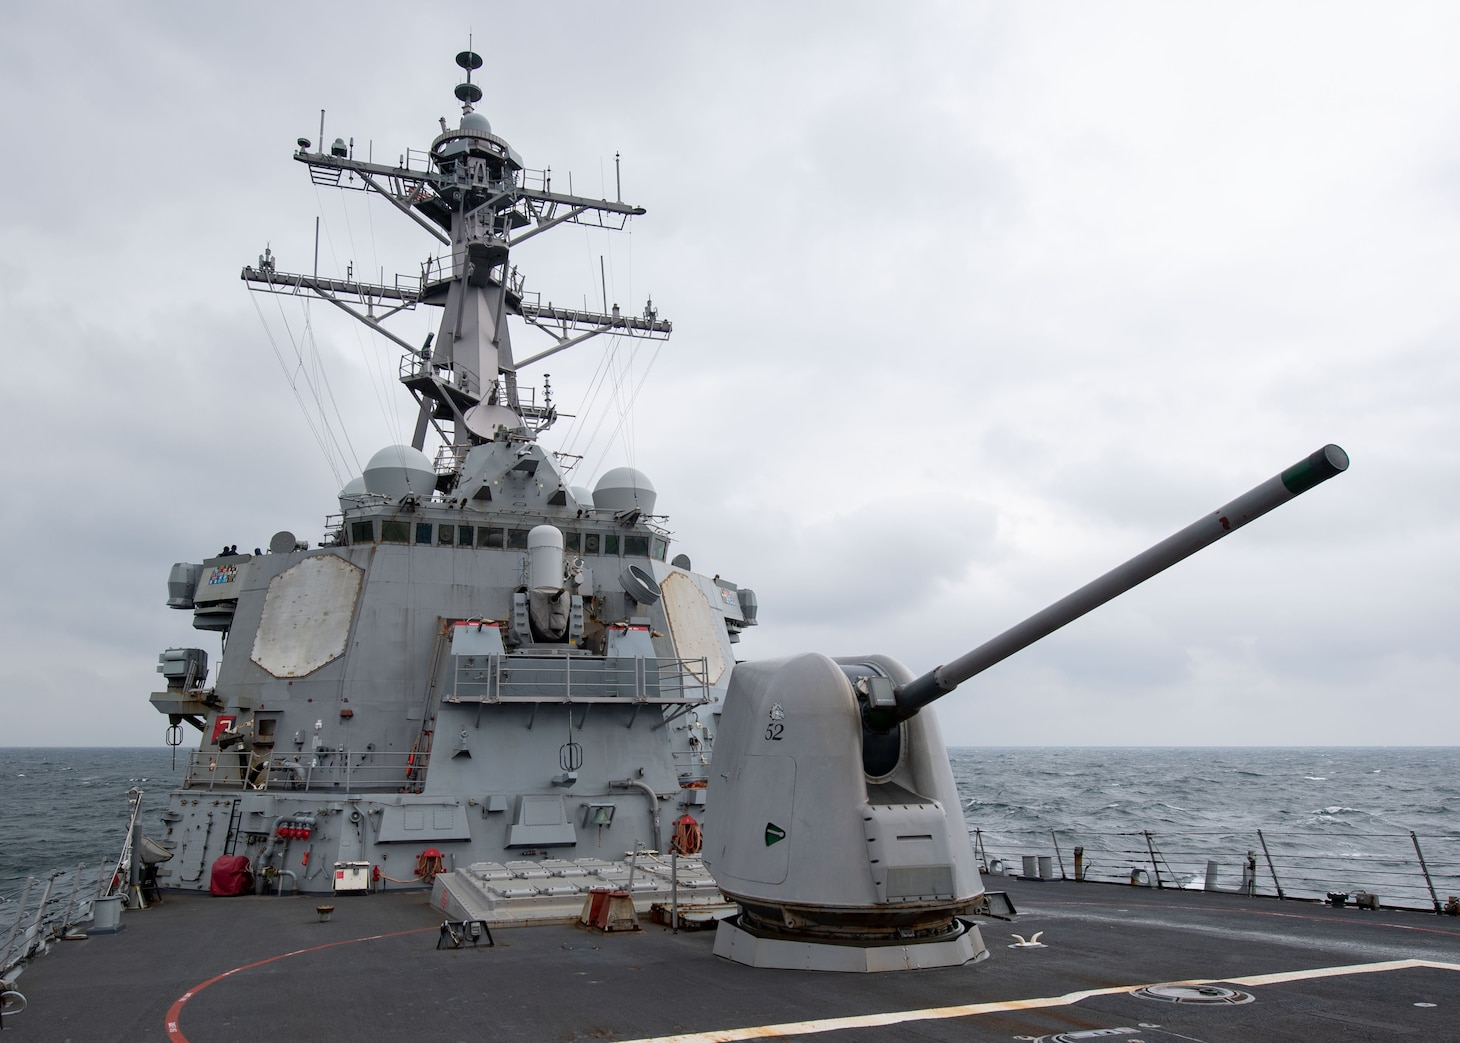 TAIWAN STRAIT (Nov. 20, 2020) – The Arleigh Burke-class guided-missile destroyer USS Barry (DDG 52) conducts routine underway operations in the Taiwan Strait. Barry is assigned to Destroyer Squadron (DESRON) 15, the Navy's largest forward-deployed DESRON and the U.S. 7th Fleet's principal surface force, forward-deployed to the U.S. 7th Fleet area of operations in support of a free and open Indo-Pacific. (U.S. Navy photo by Mass Communication Specialist Seaman Molly Crawford)